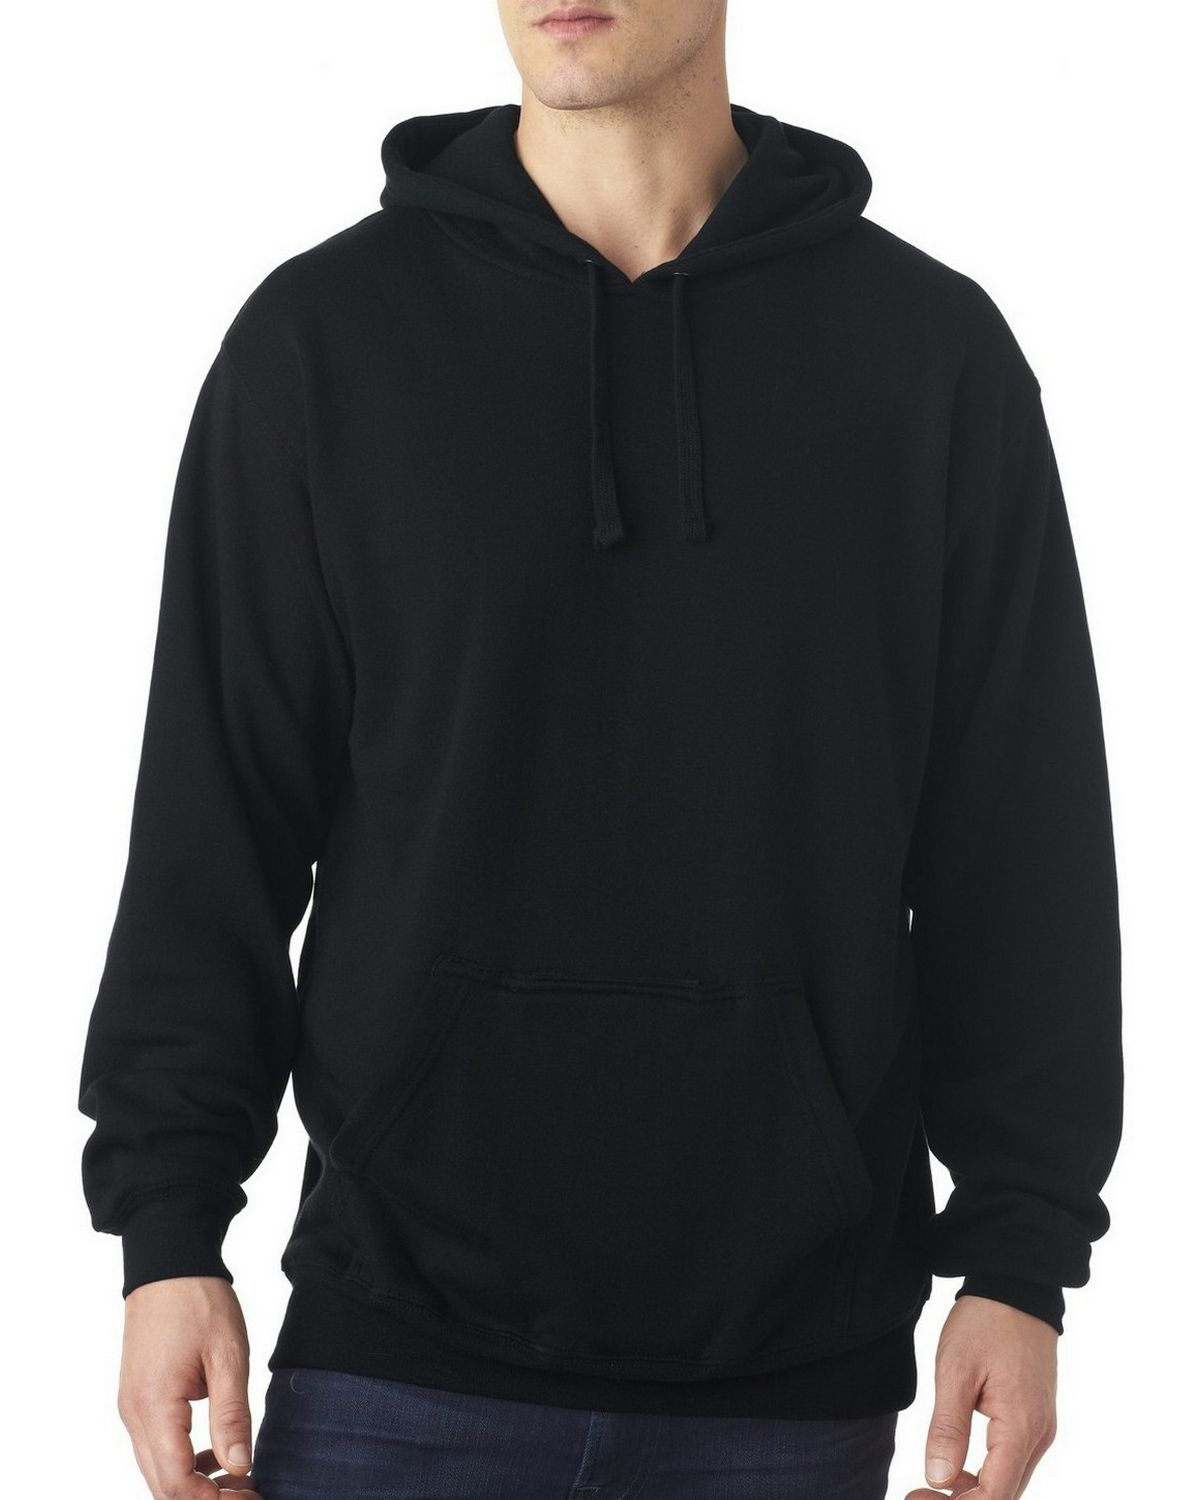 J America J8815 Blended Tailgate Hooded Sweatshirt - Navy - L J8815